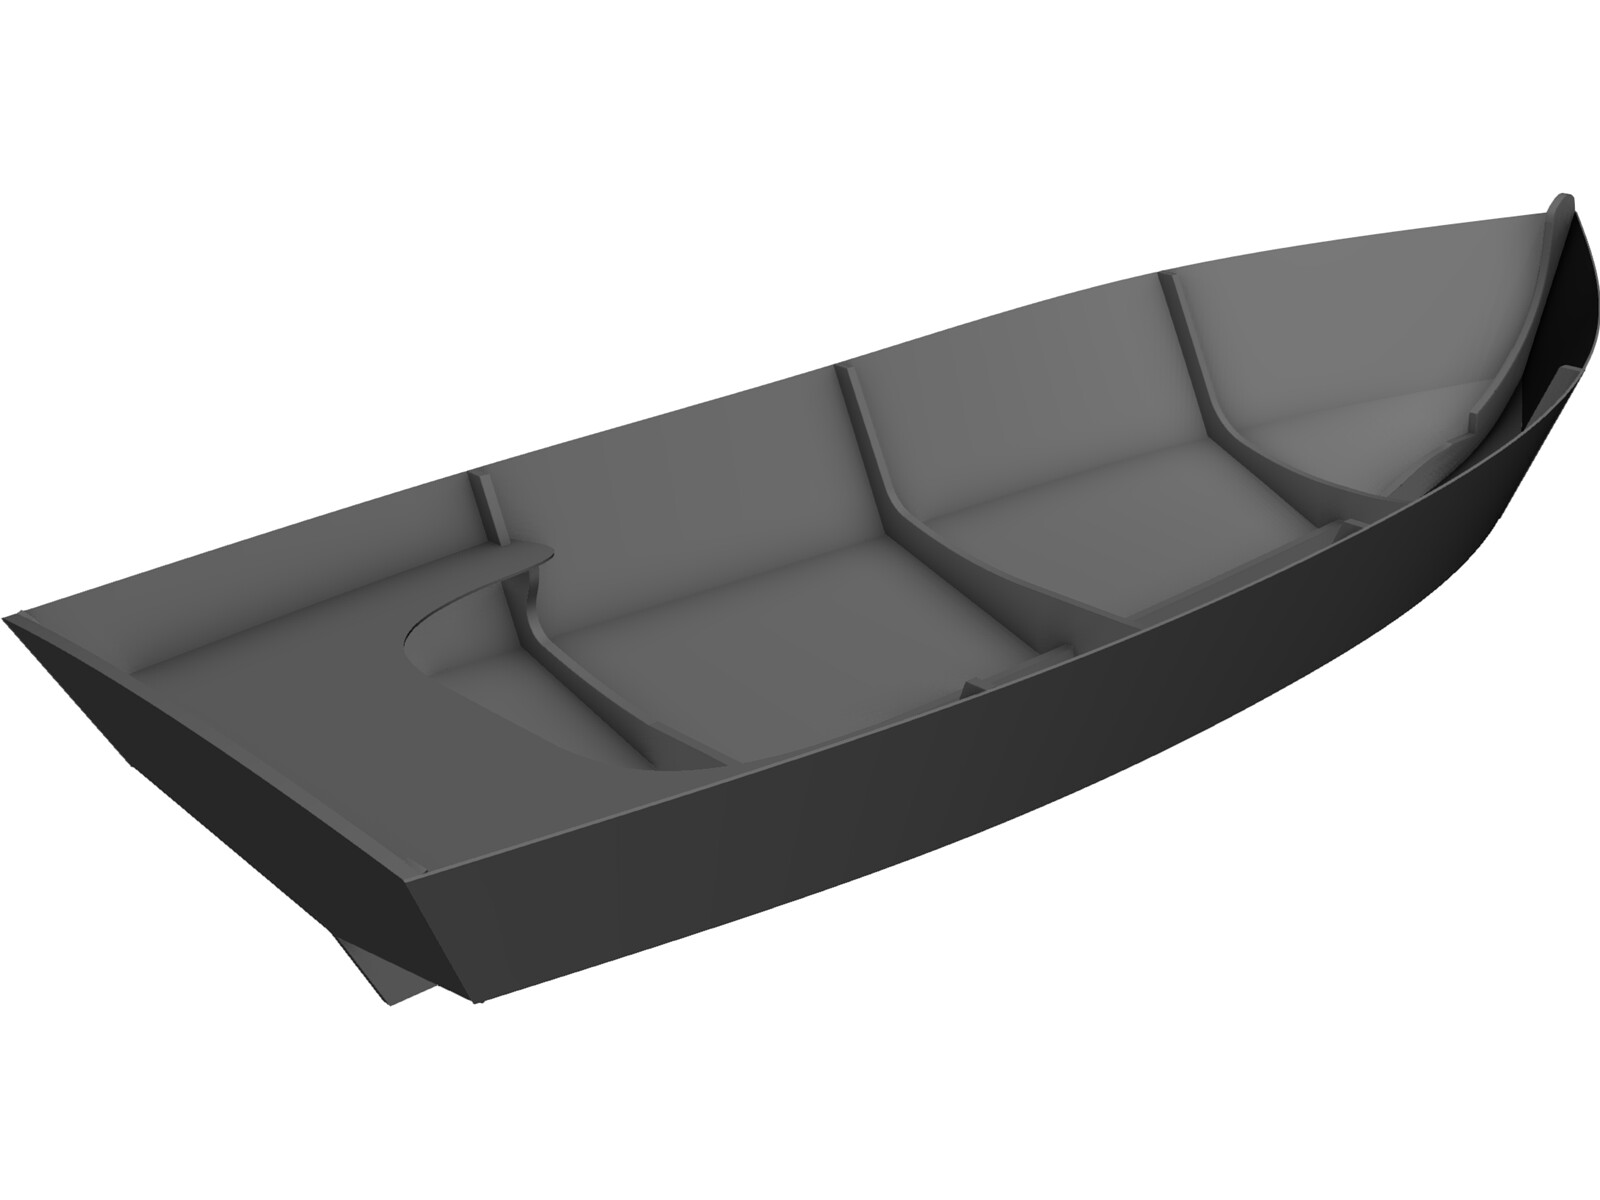 Sea Skiff Boat 3D Model